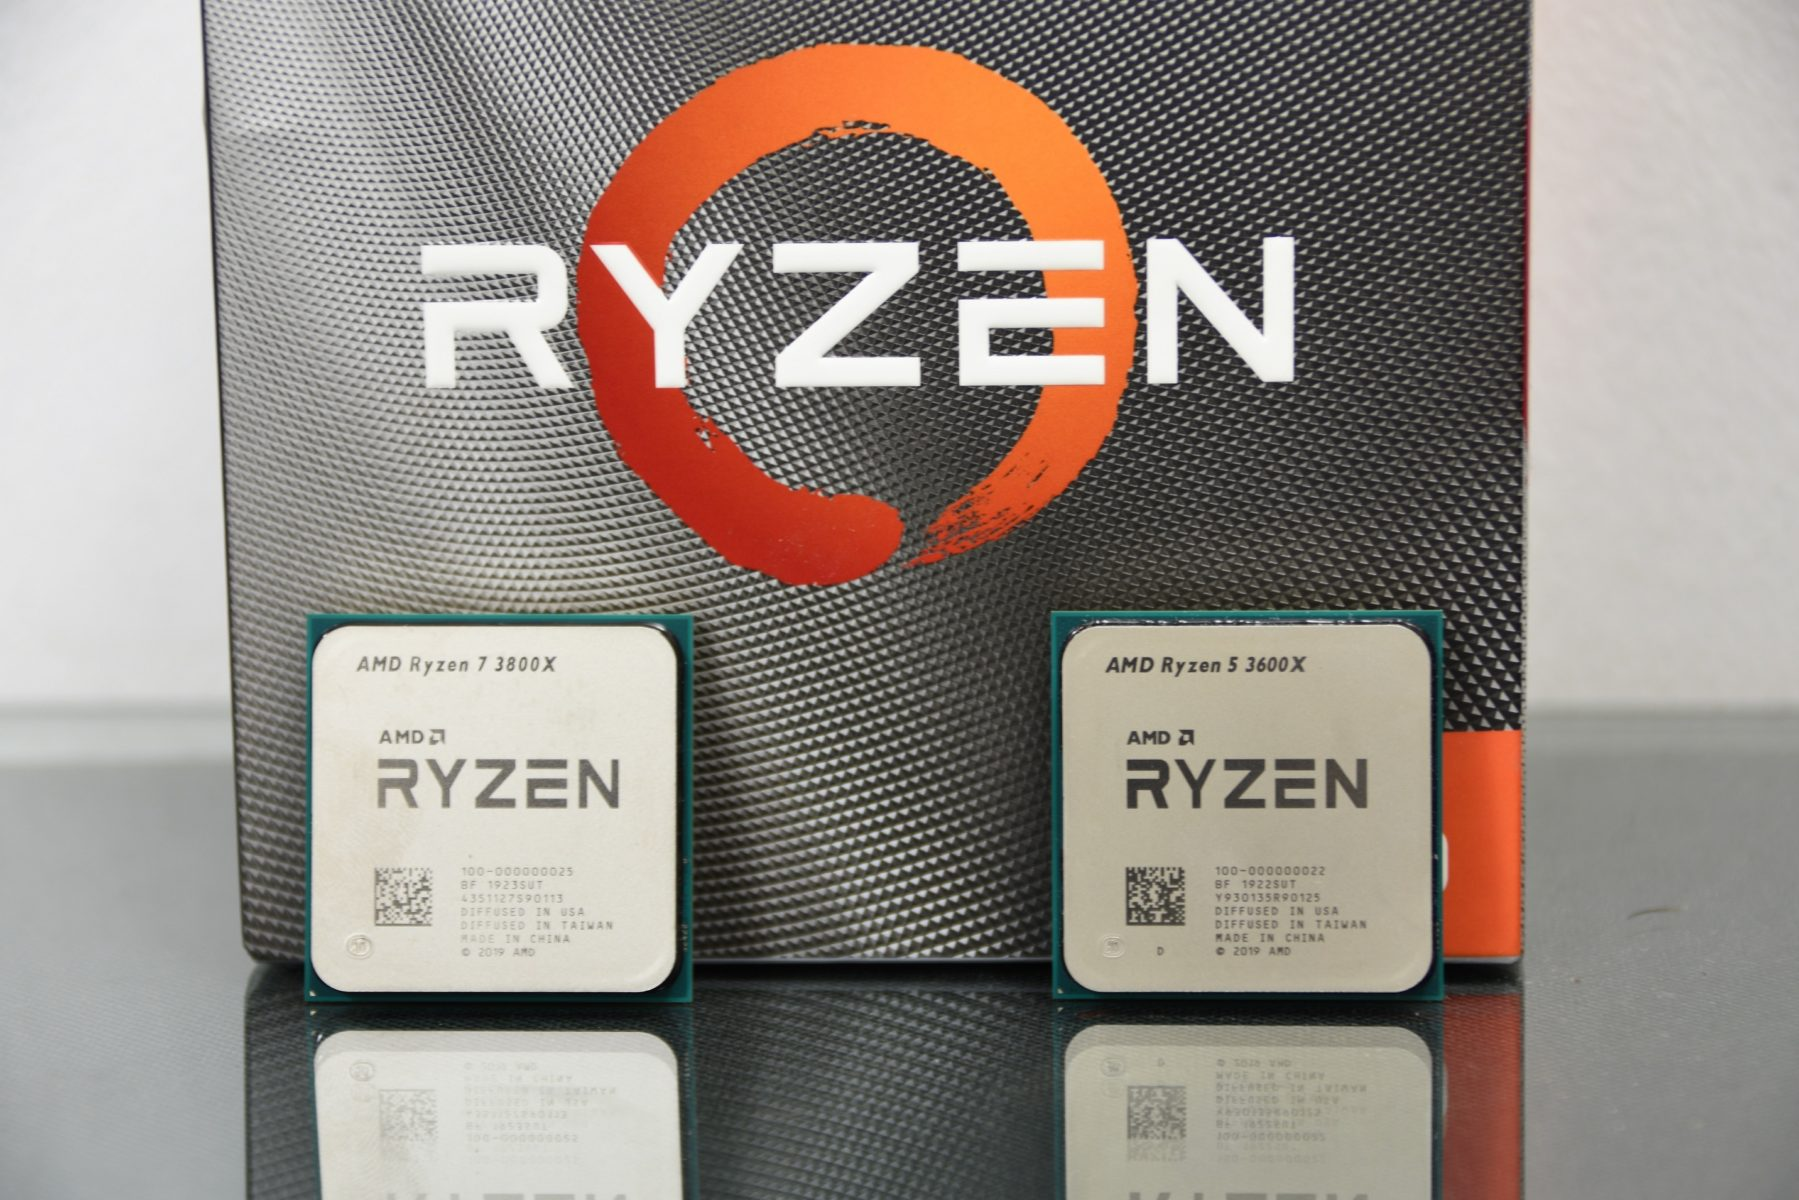 Review Ryzen 7 3800X and Ryzen 5 3600X – Specs | Testing | OverClocking